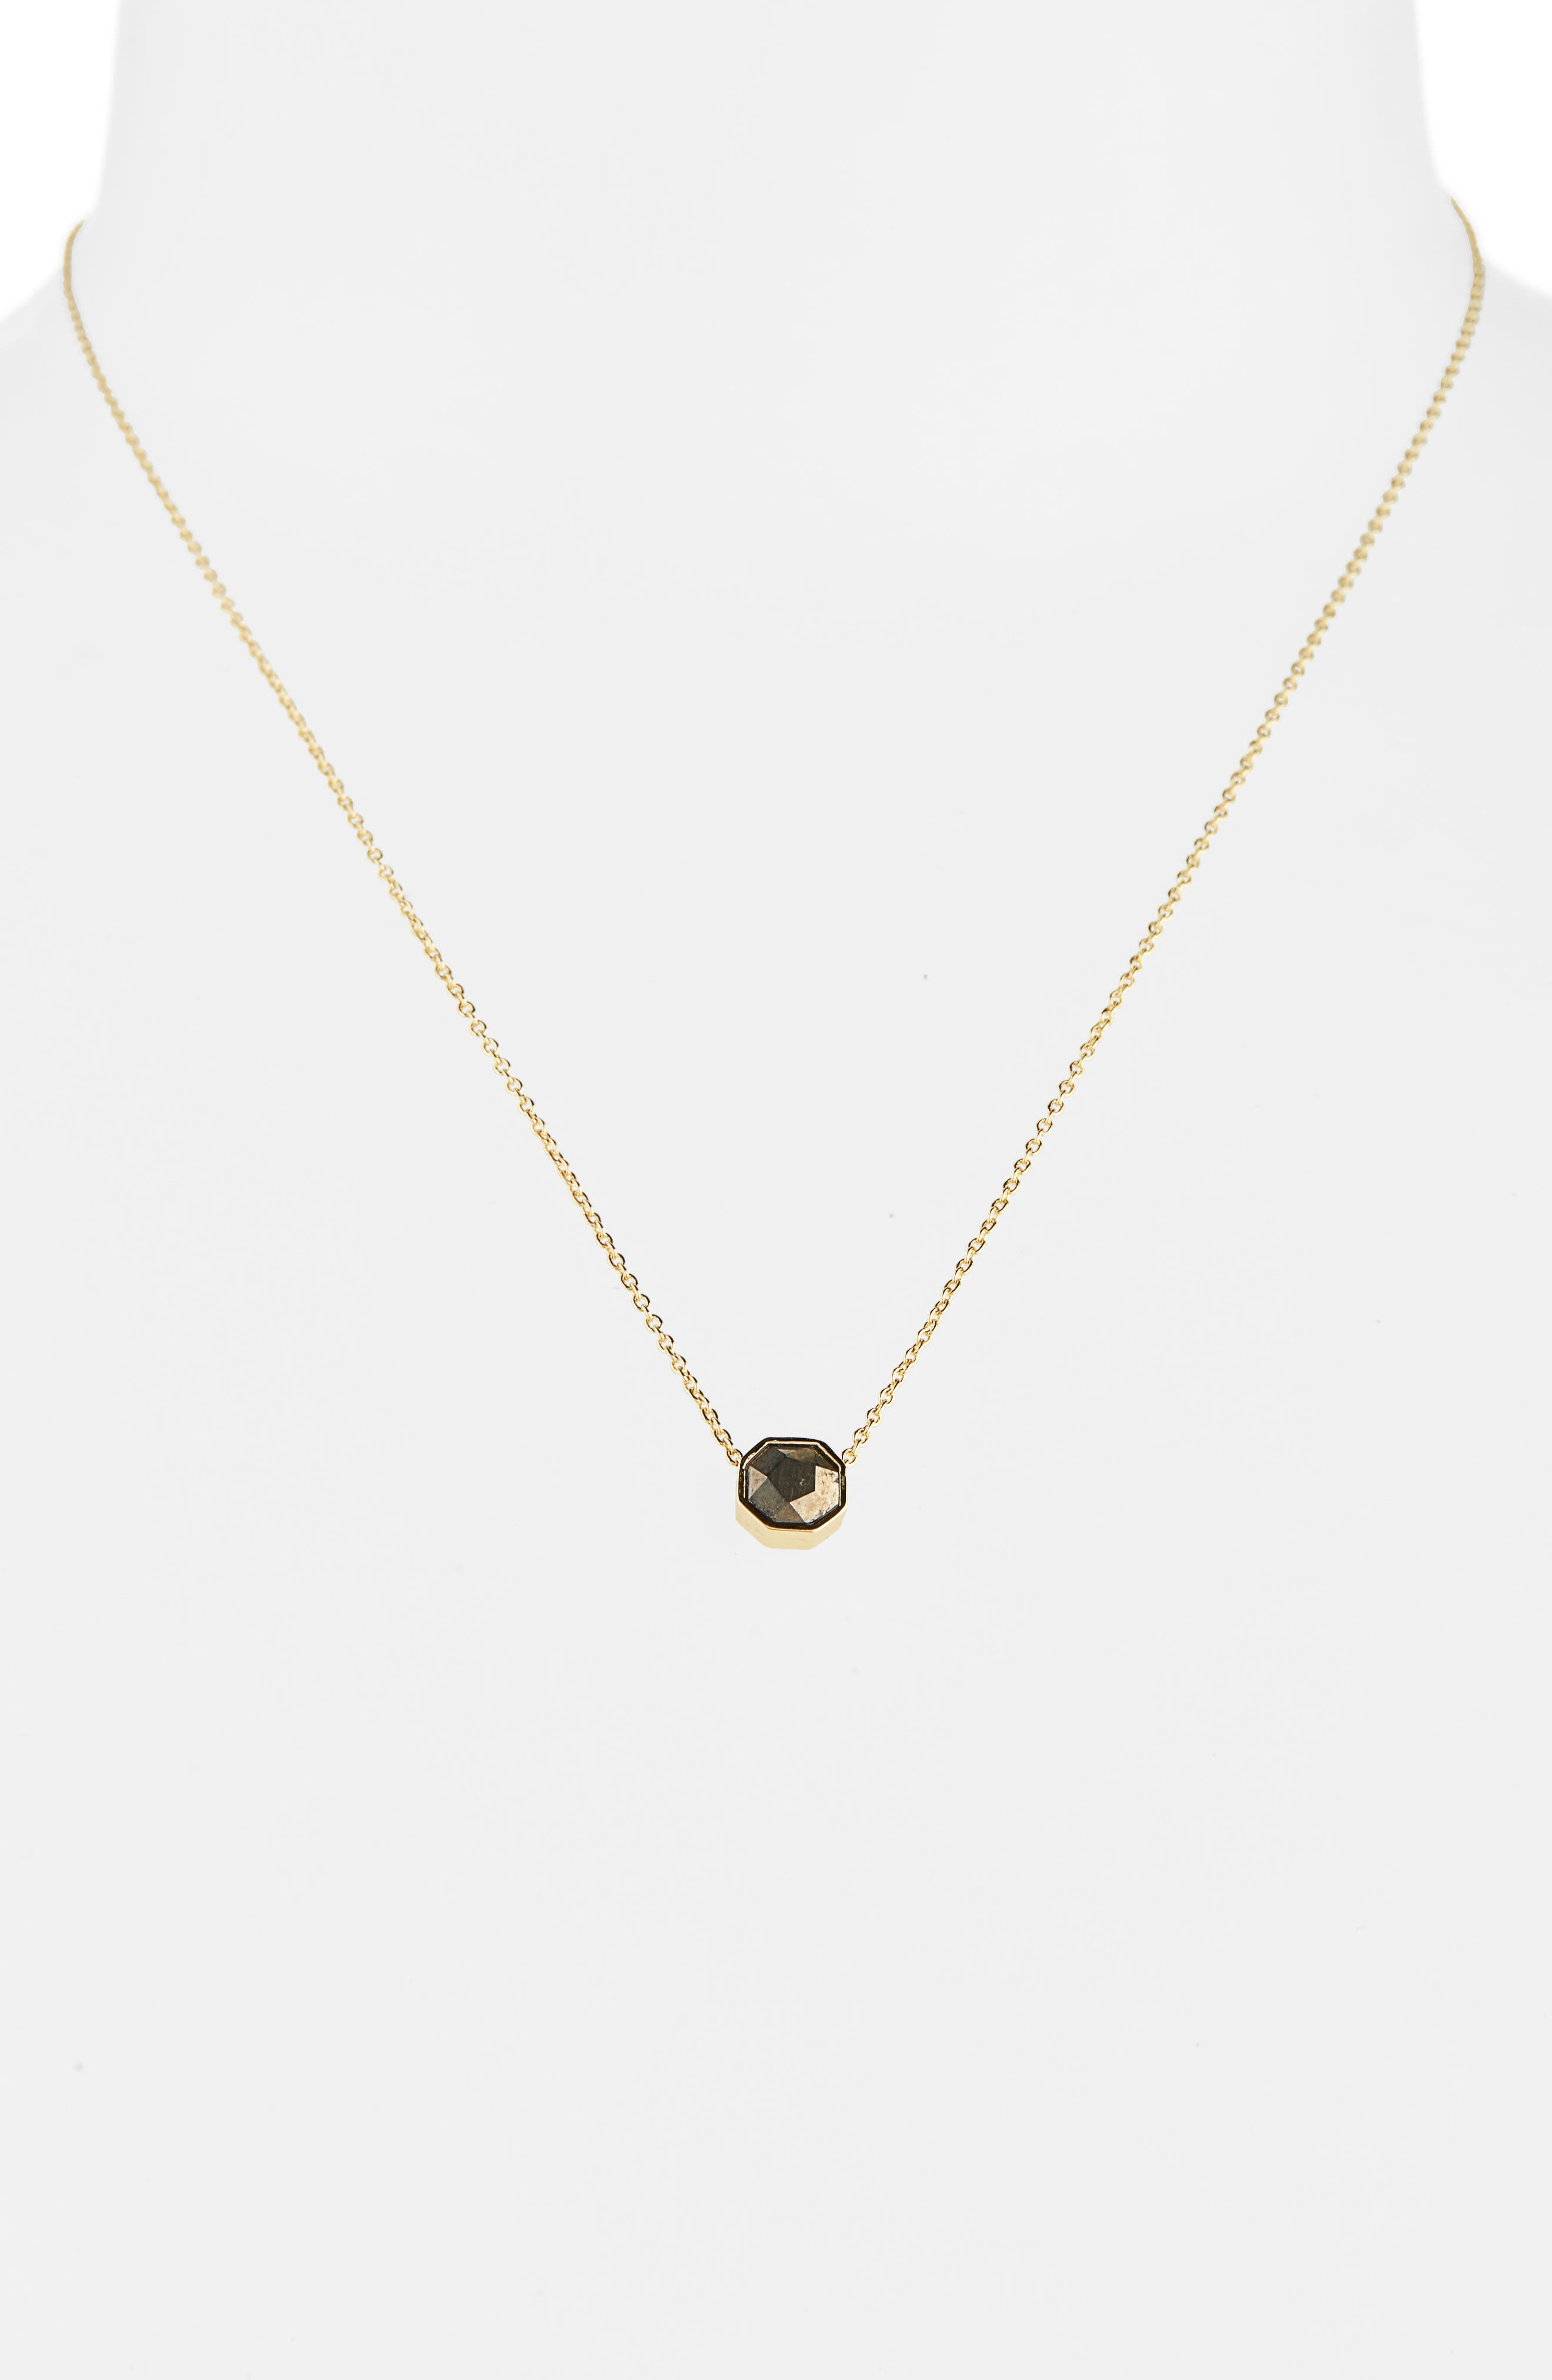 18-Inch Hamilton Gold Plated Necklace with 6mm Crystal Birthstone Beads and Gold Filled Cross Charm.